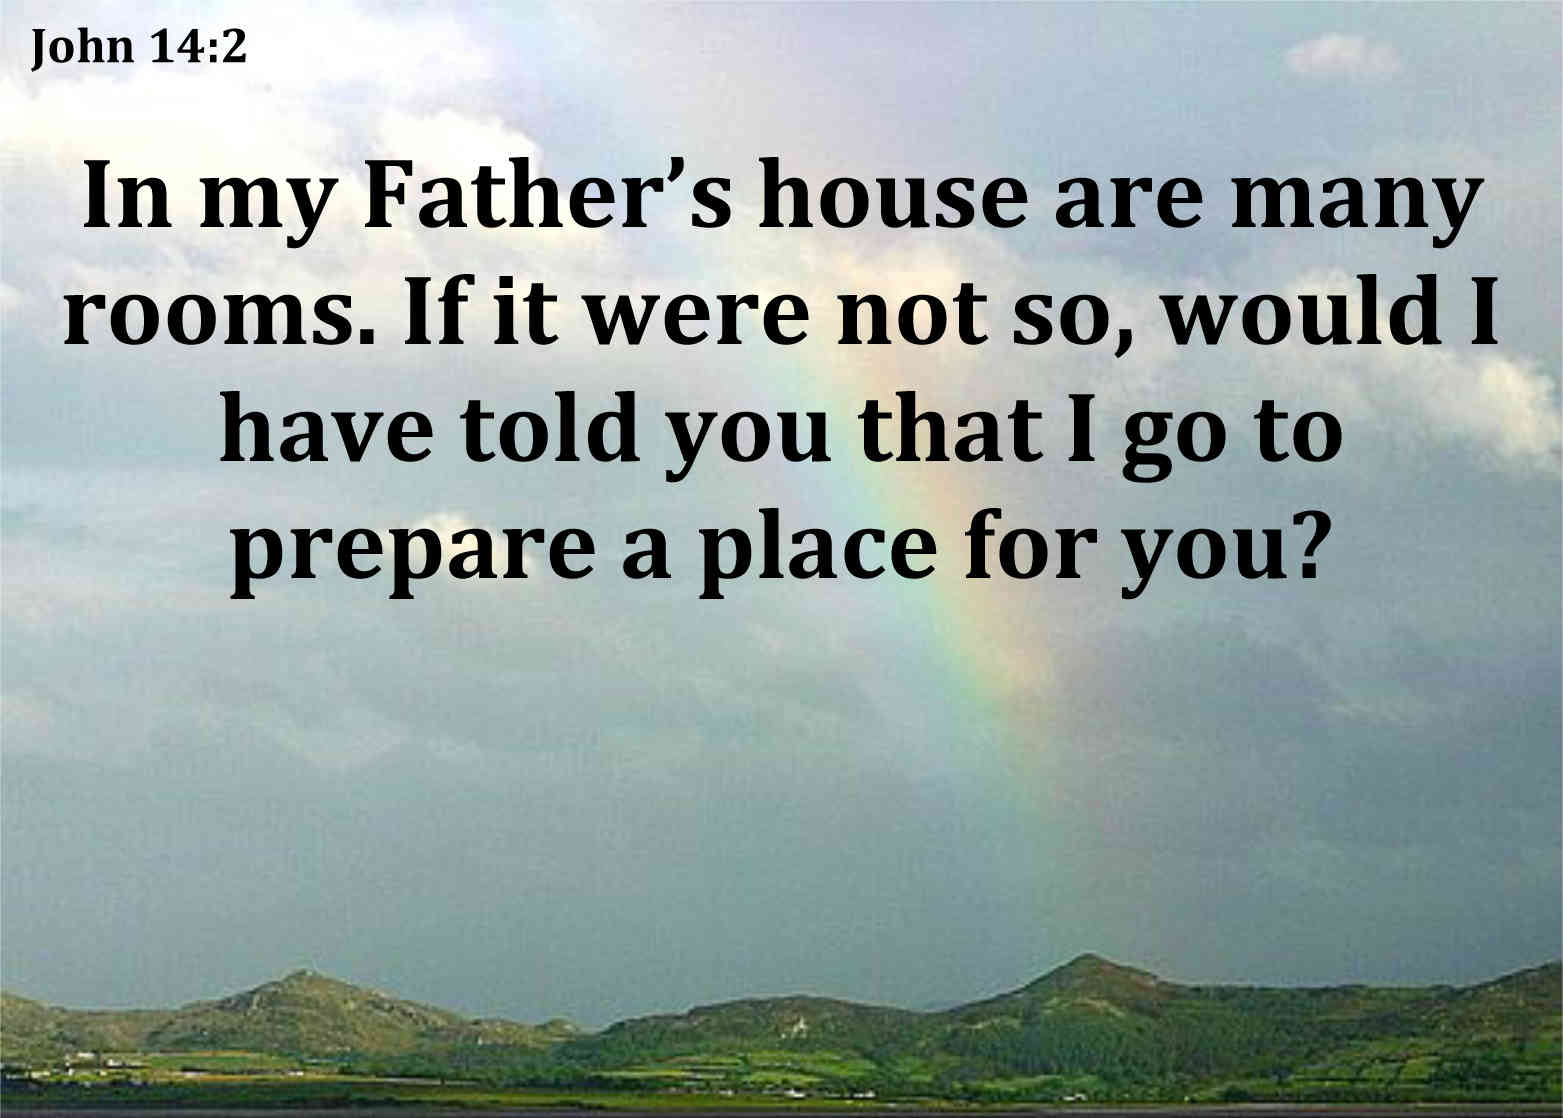 In My Father's House Are Many Rooms. If It Were So, Would I Have Told You That I Go To Prepare a Place For You!